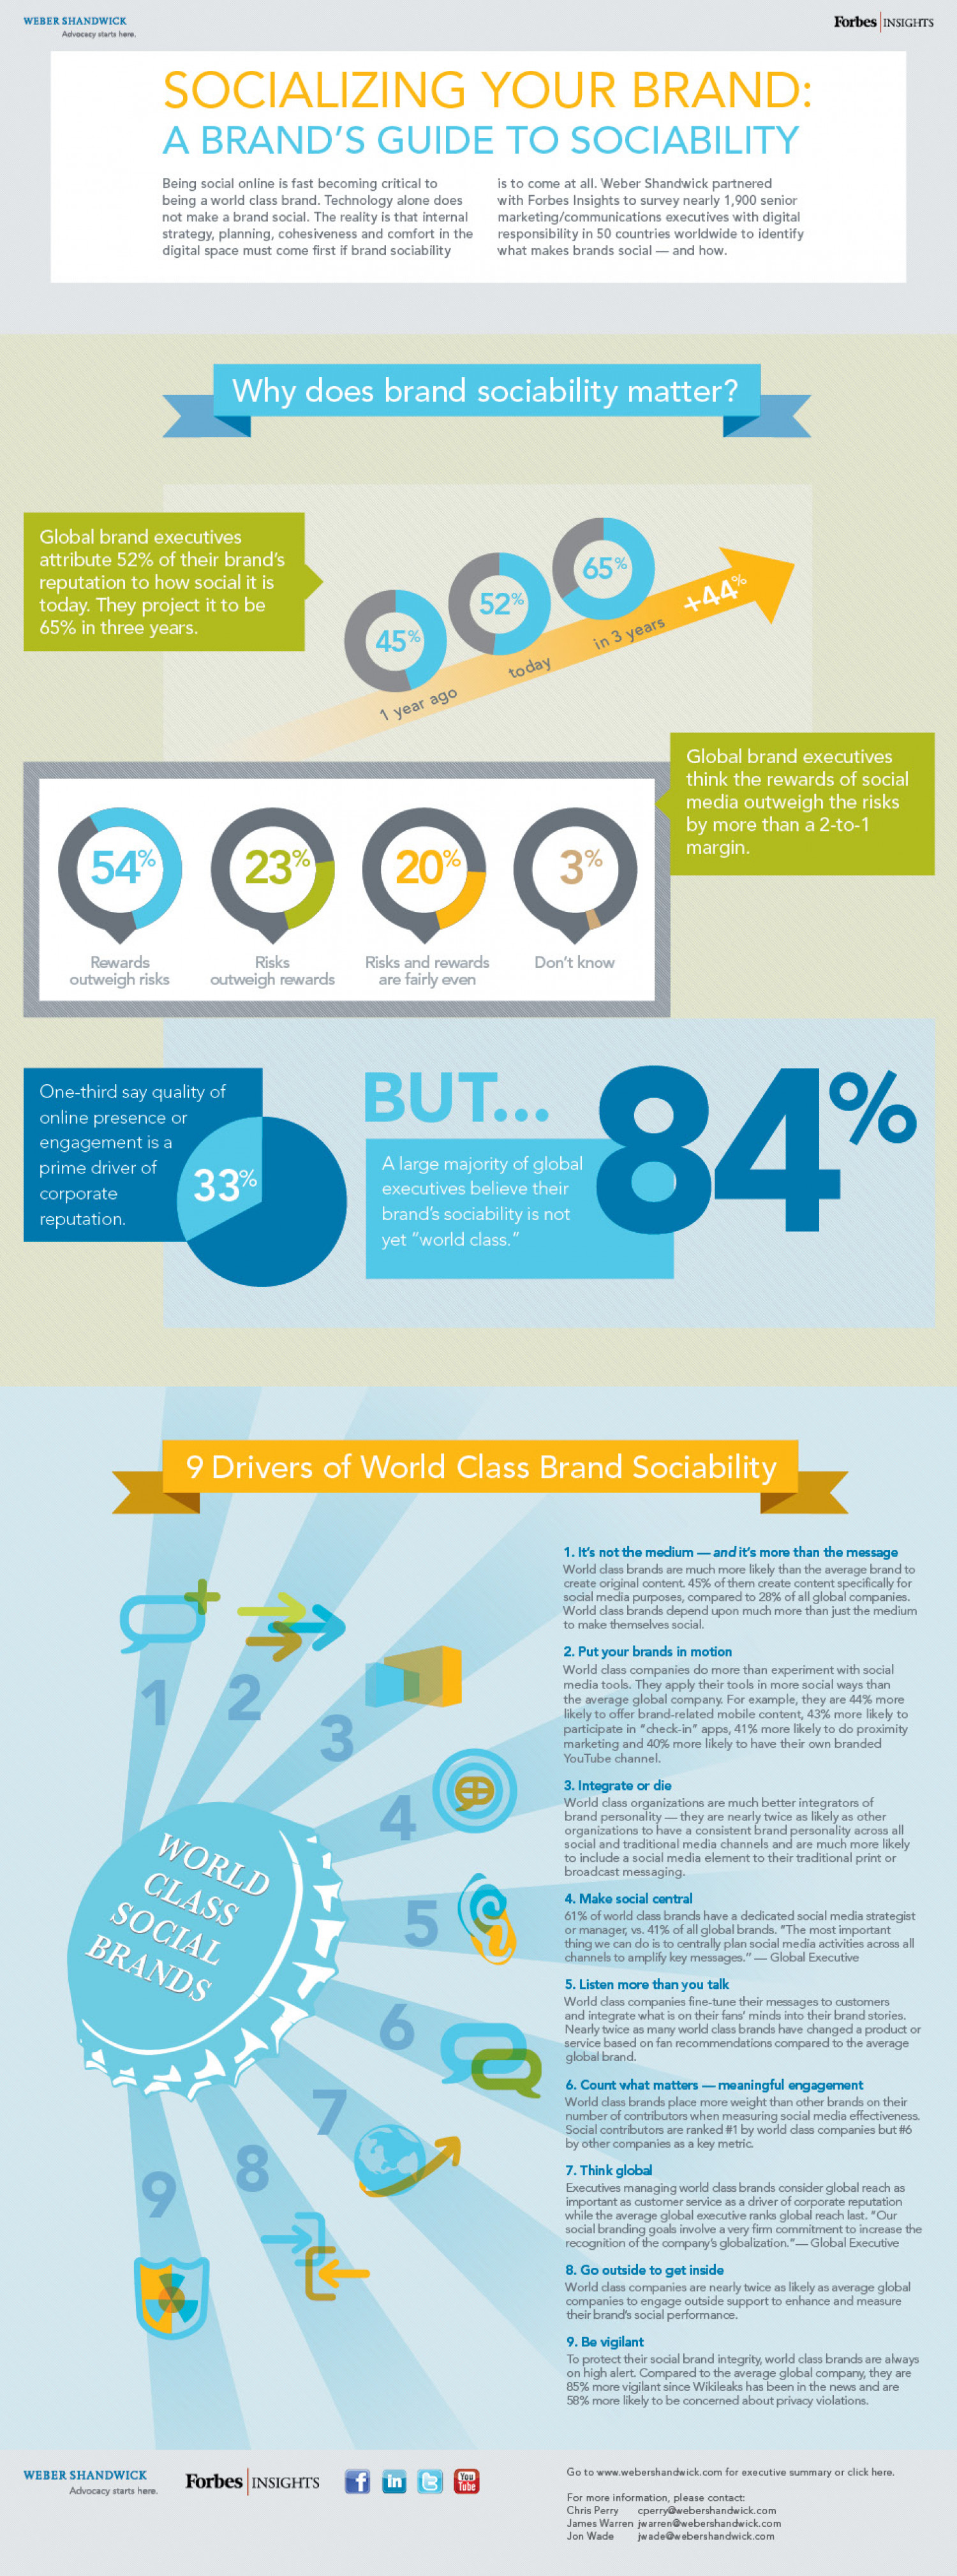 How to Socialize a Brand Infographic